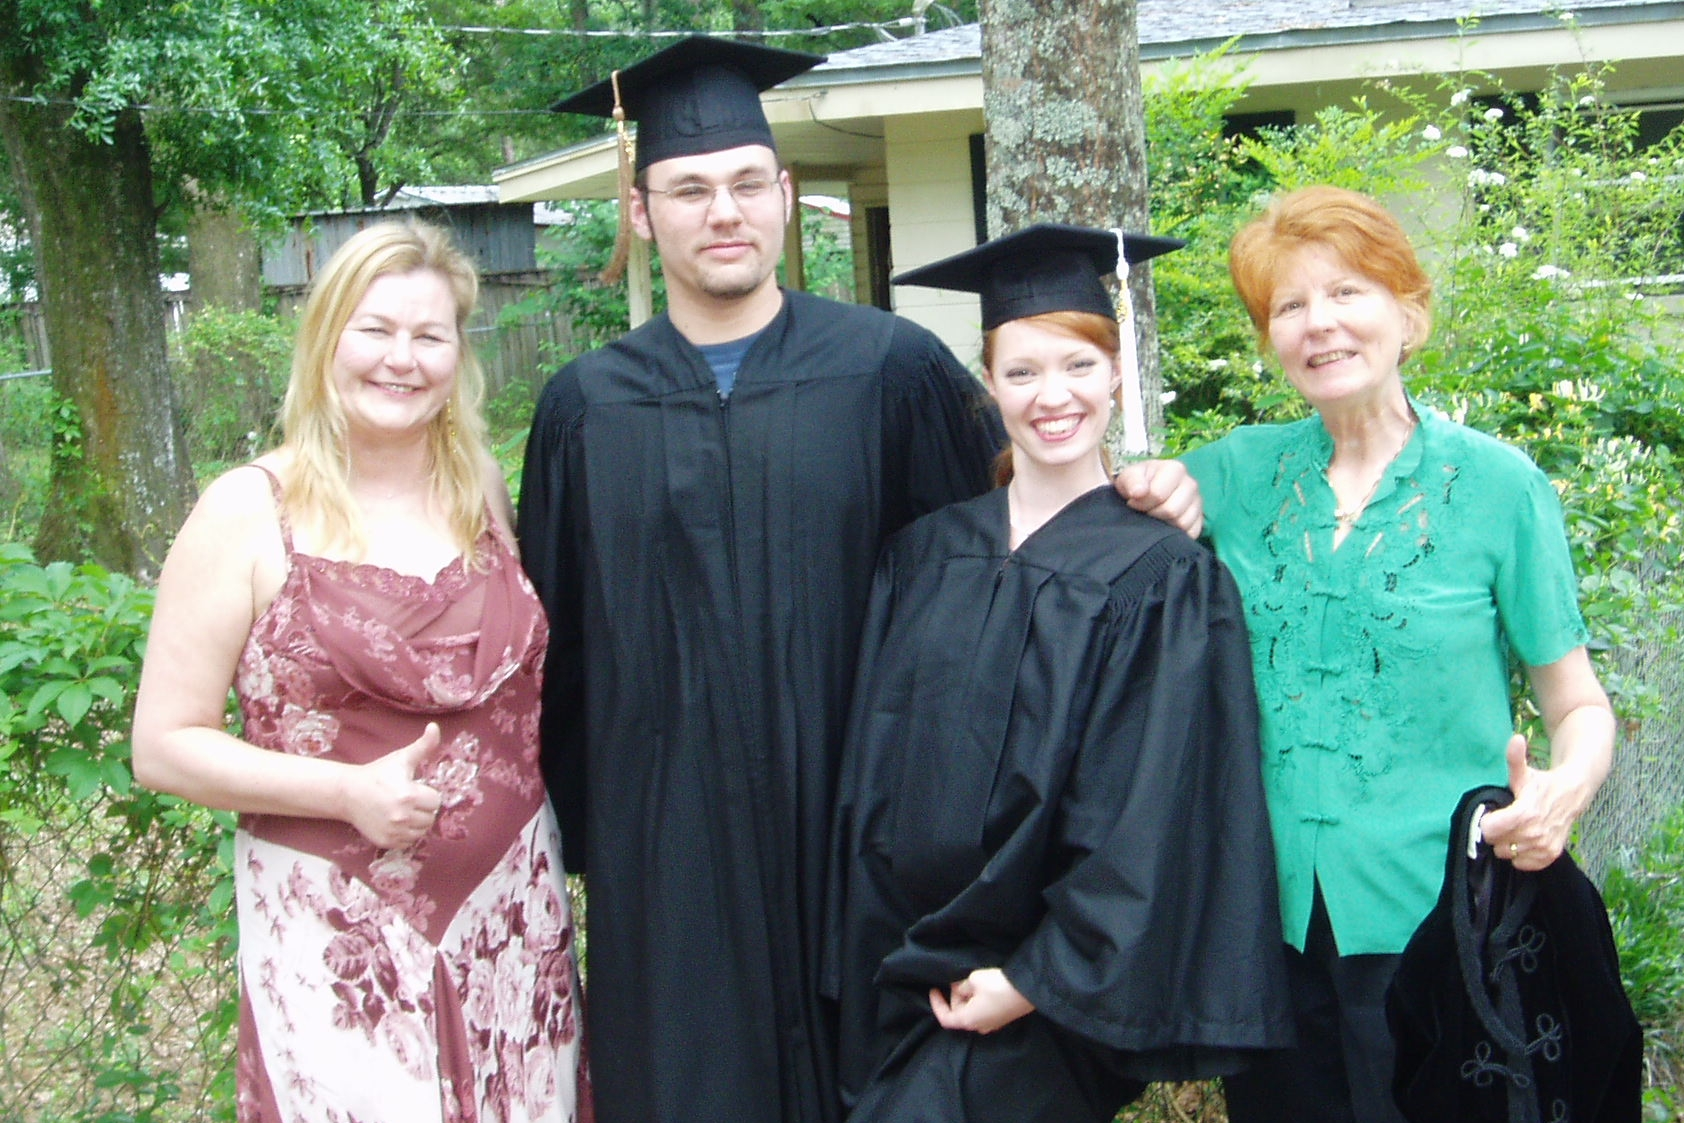 My graduation from college, 2005. (Left to Right: Mother-in-Law, Husband, Me, Mom)